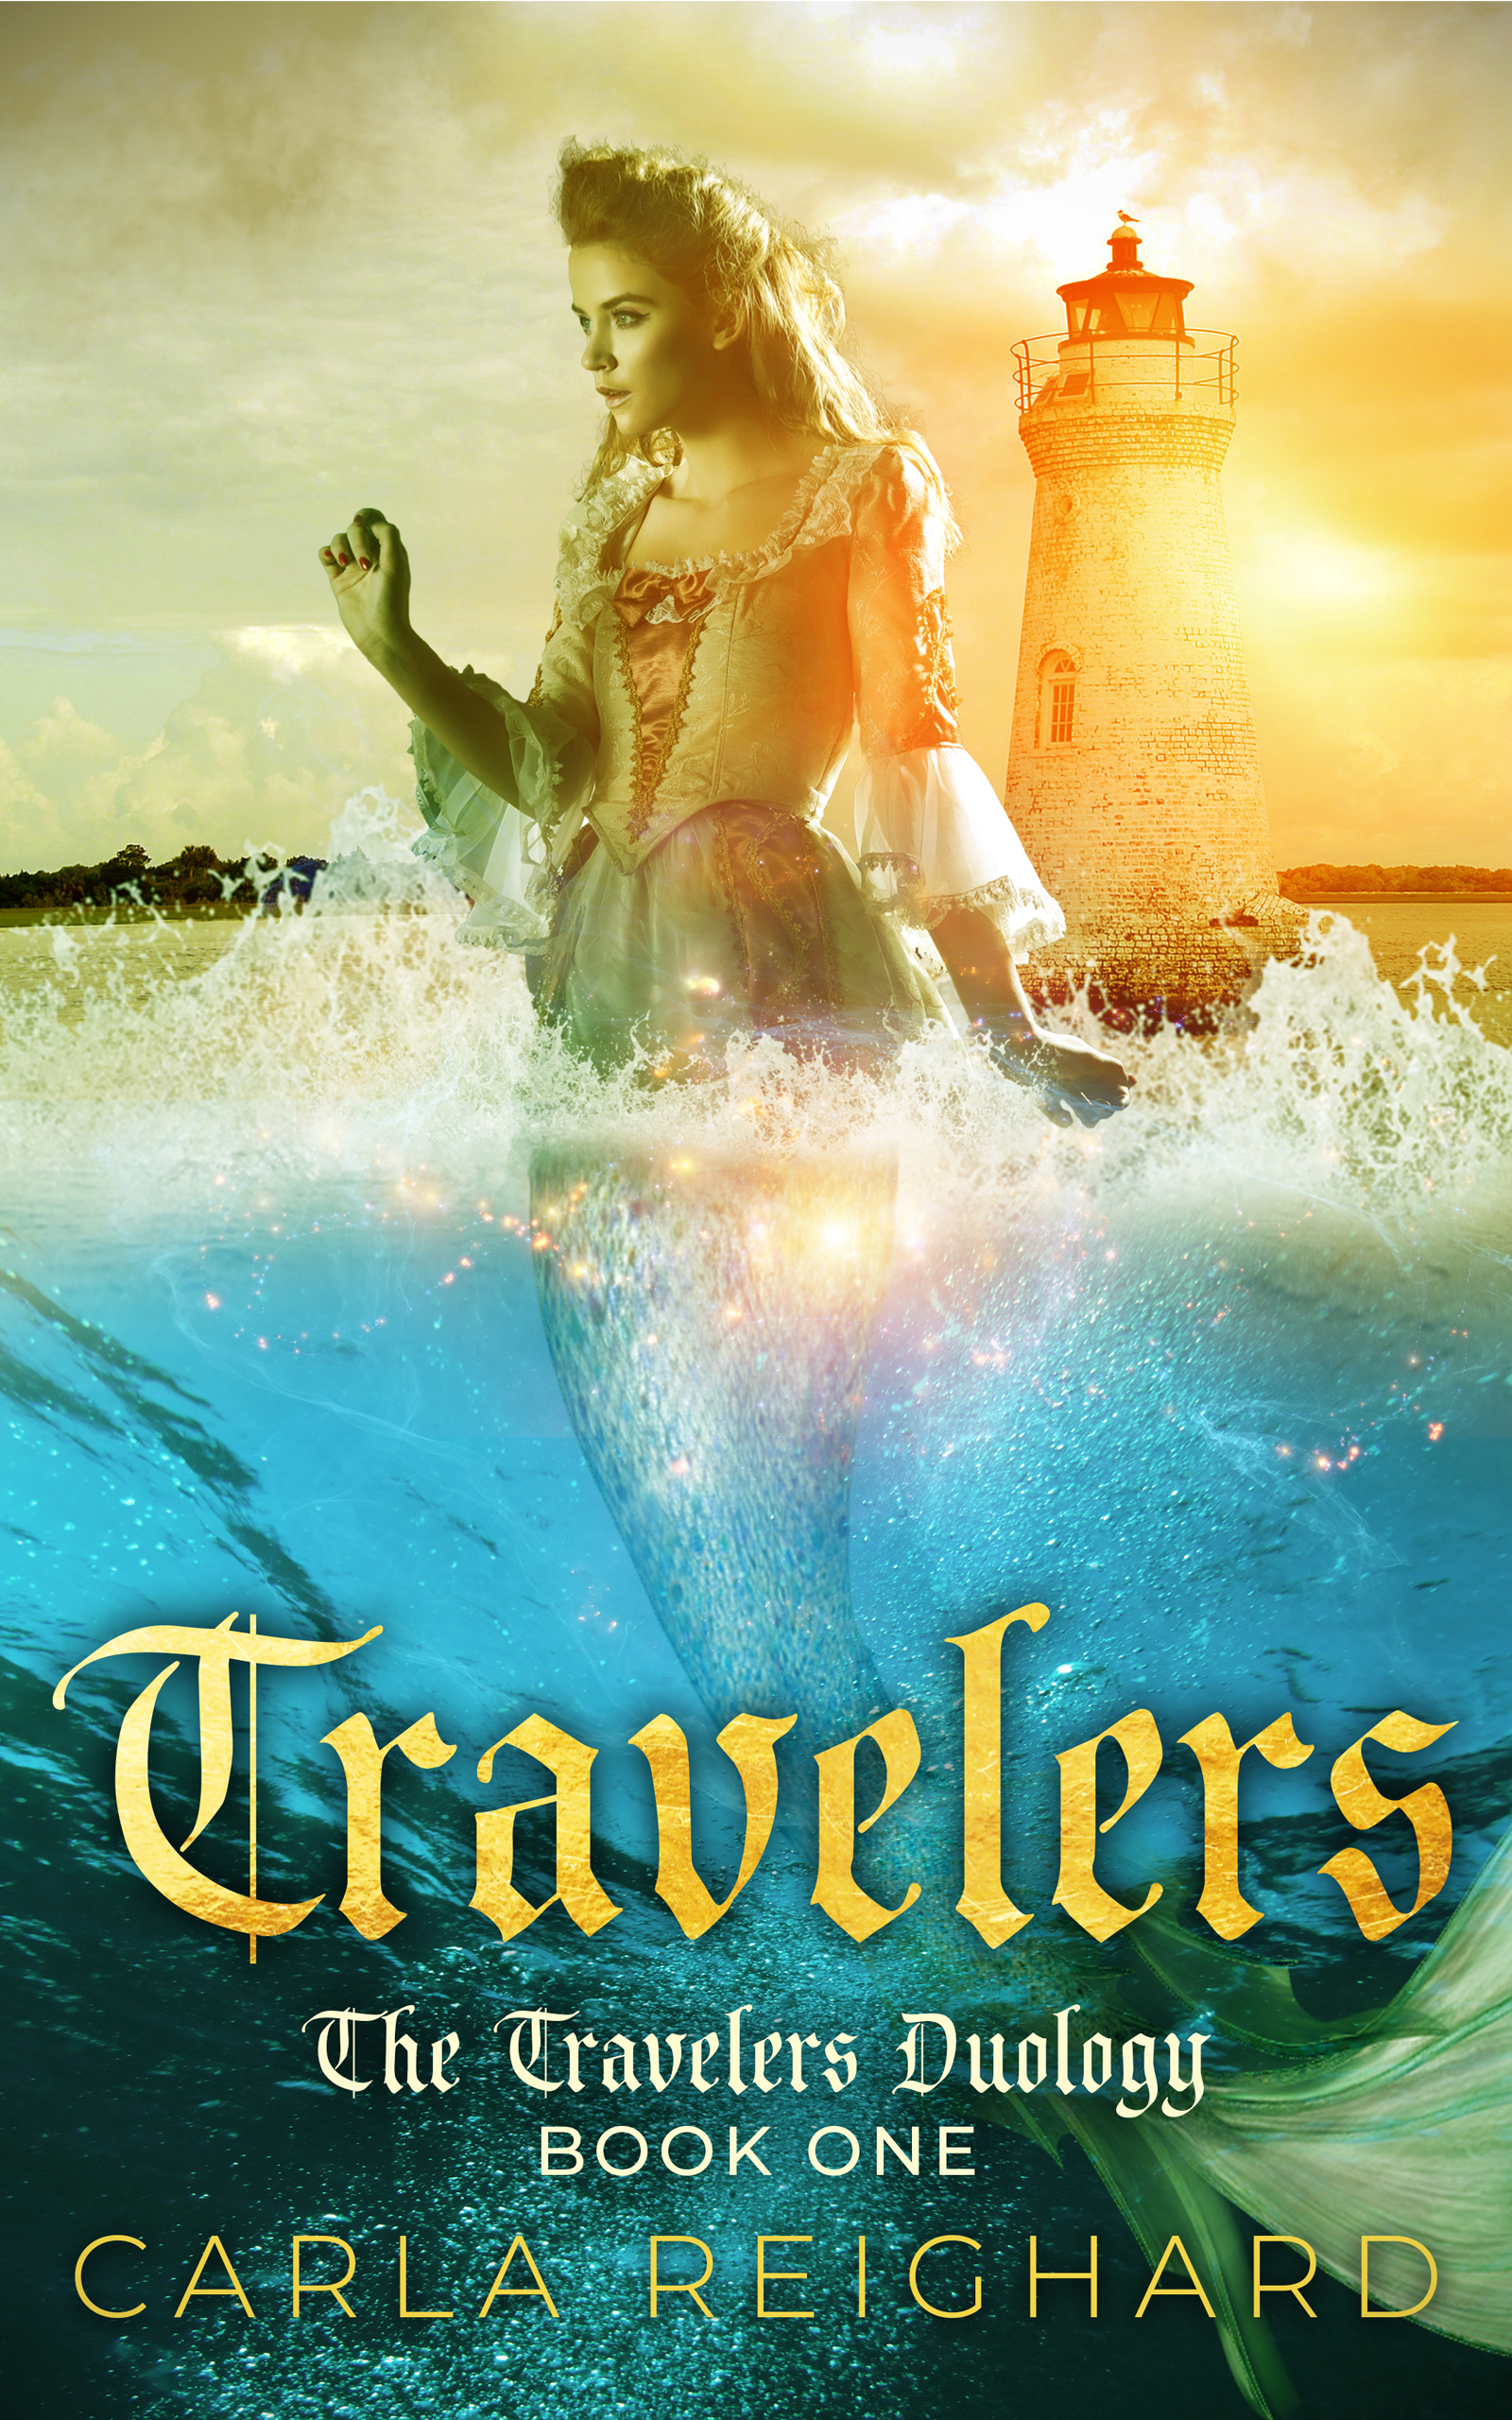 For fans of time travel and mermaids.